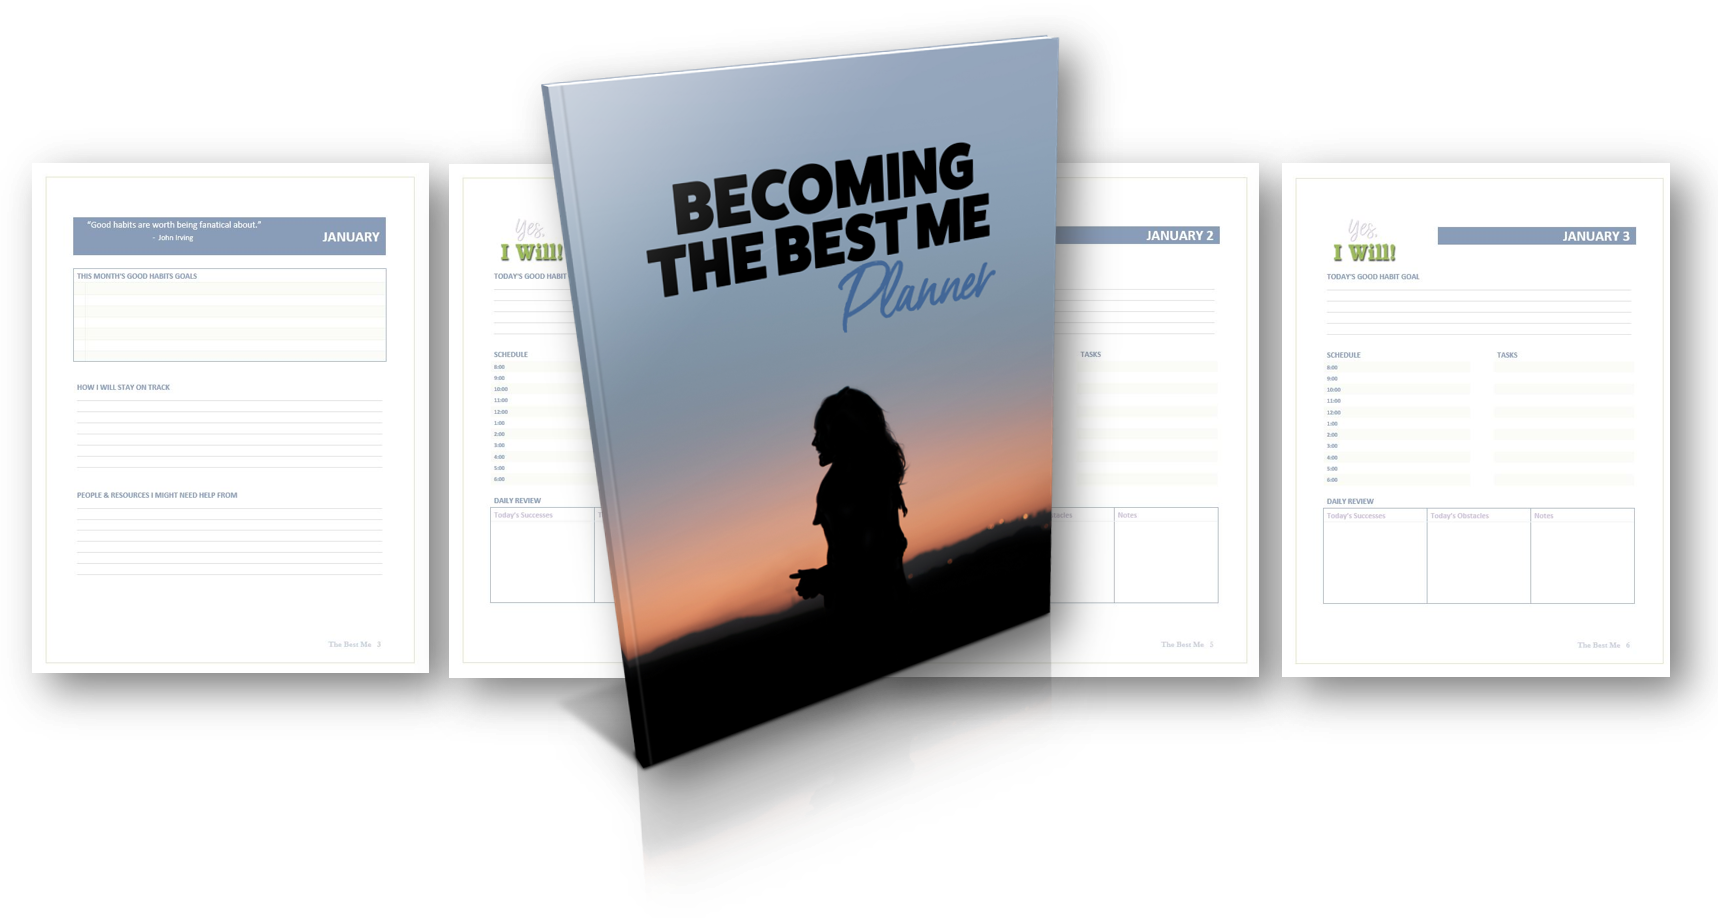 Becoming the Best Me Journal